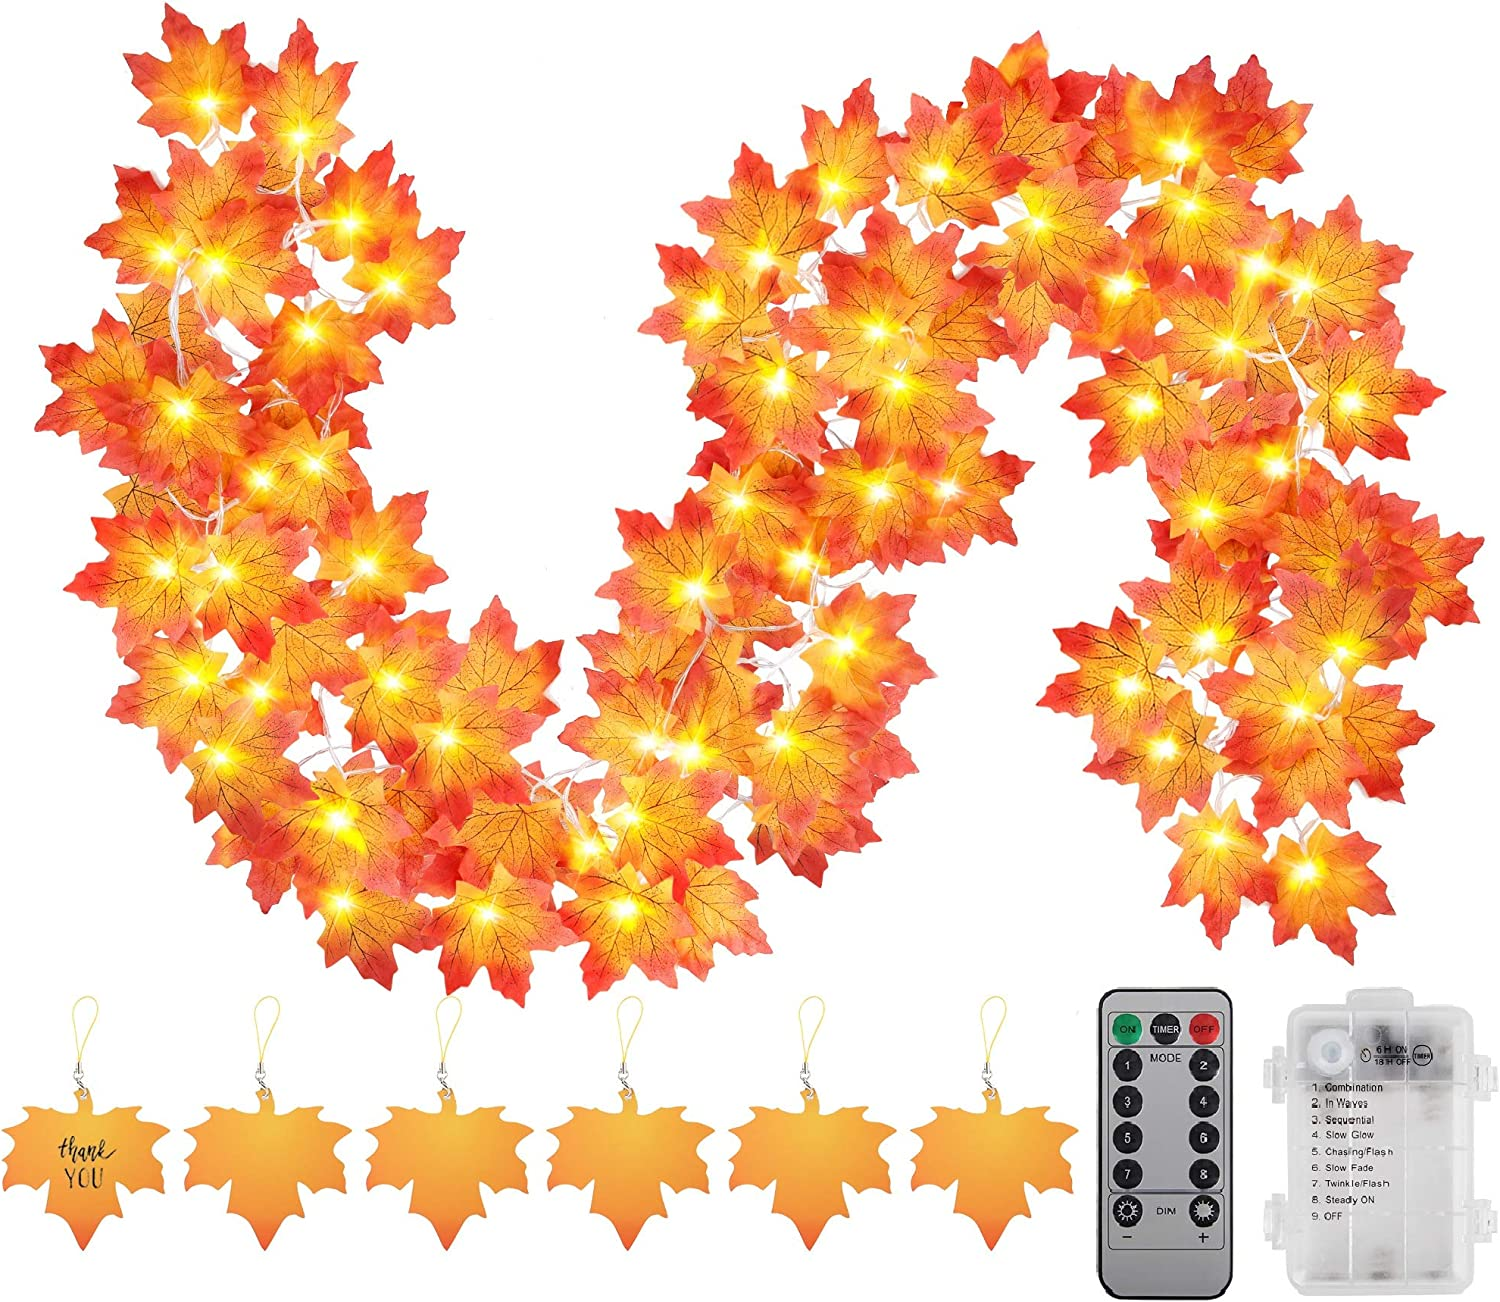 Thanksgiving Decorations Fall Garland String Lights with Timer and Remote, 50 LED 16.4Ft Lighted Autumn Leaves Garlands Decor, Battery Operated Fall Lights for Home Decoration Party Indoor Mantle